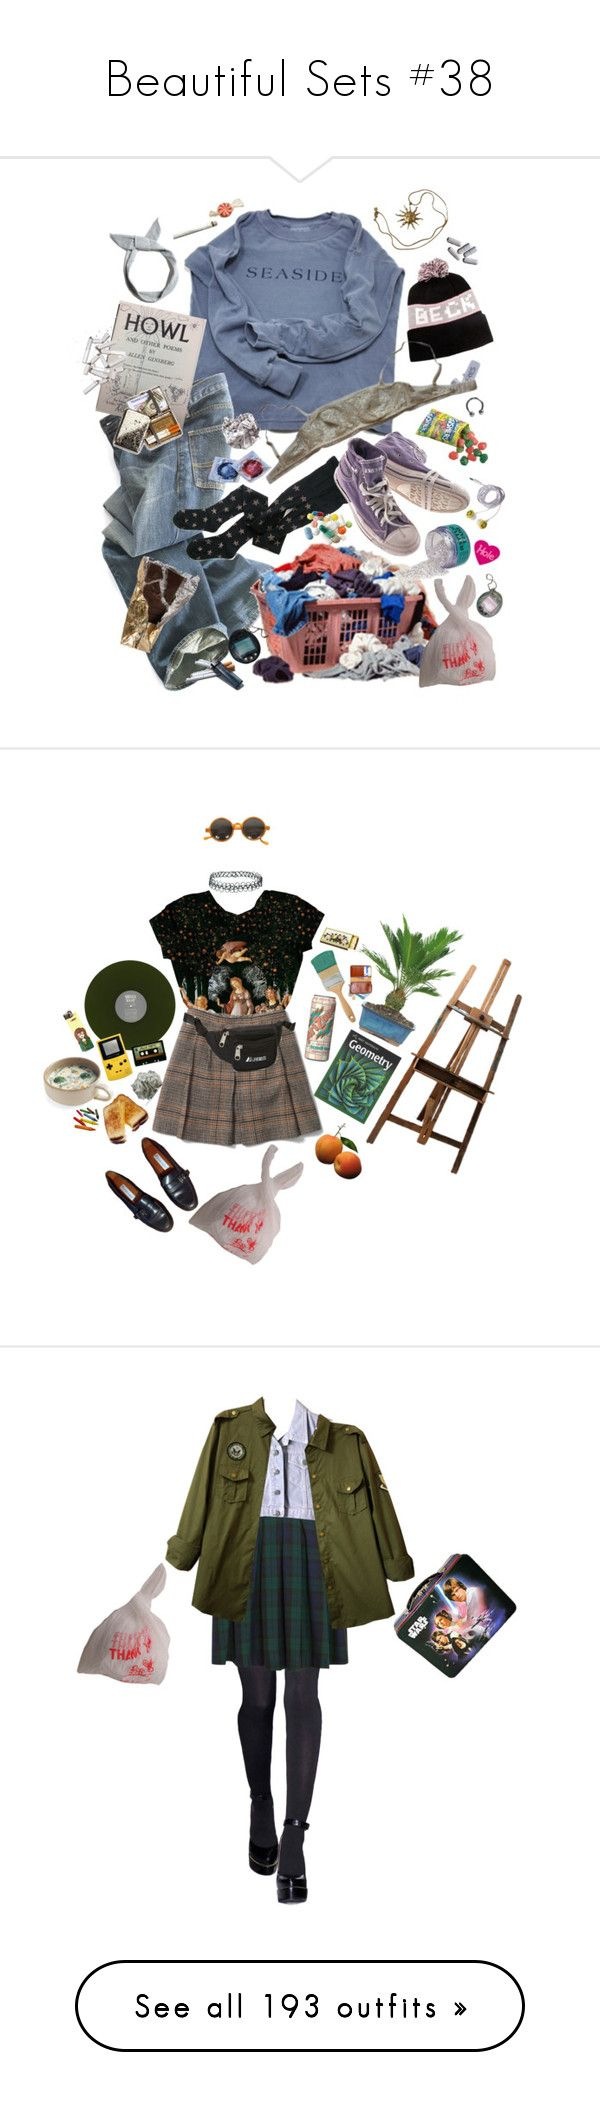 """Beautiful Sets #38"" by harleenquinzelx ❤ liked on Polyvore featuring Polo Ralph Lauren, Eres, Diesel, Pull&Bear, Anne Klein, EASEL, Etienne Aigner, Chandelier, Topshop and Michele"